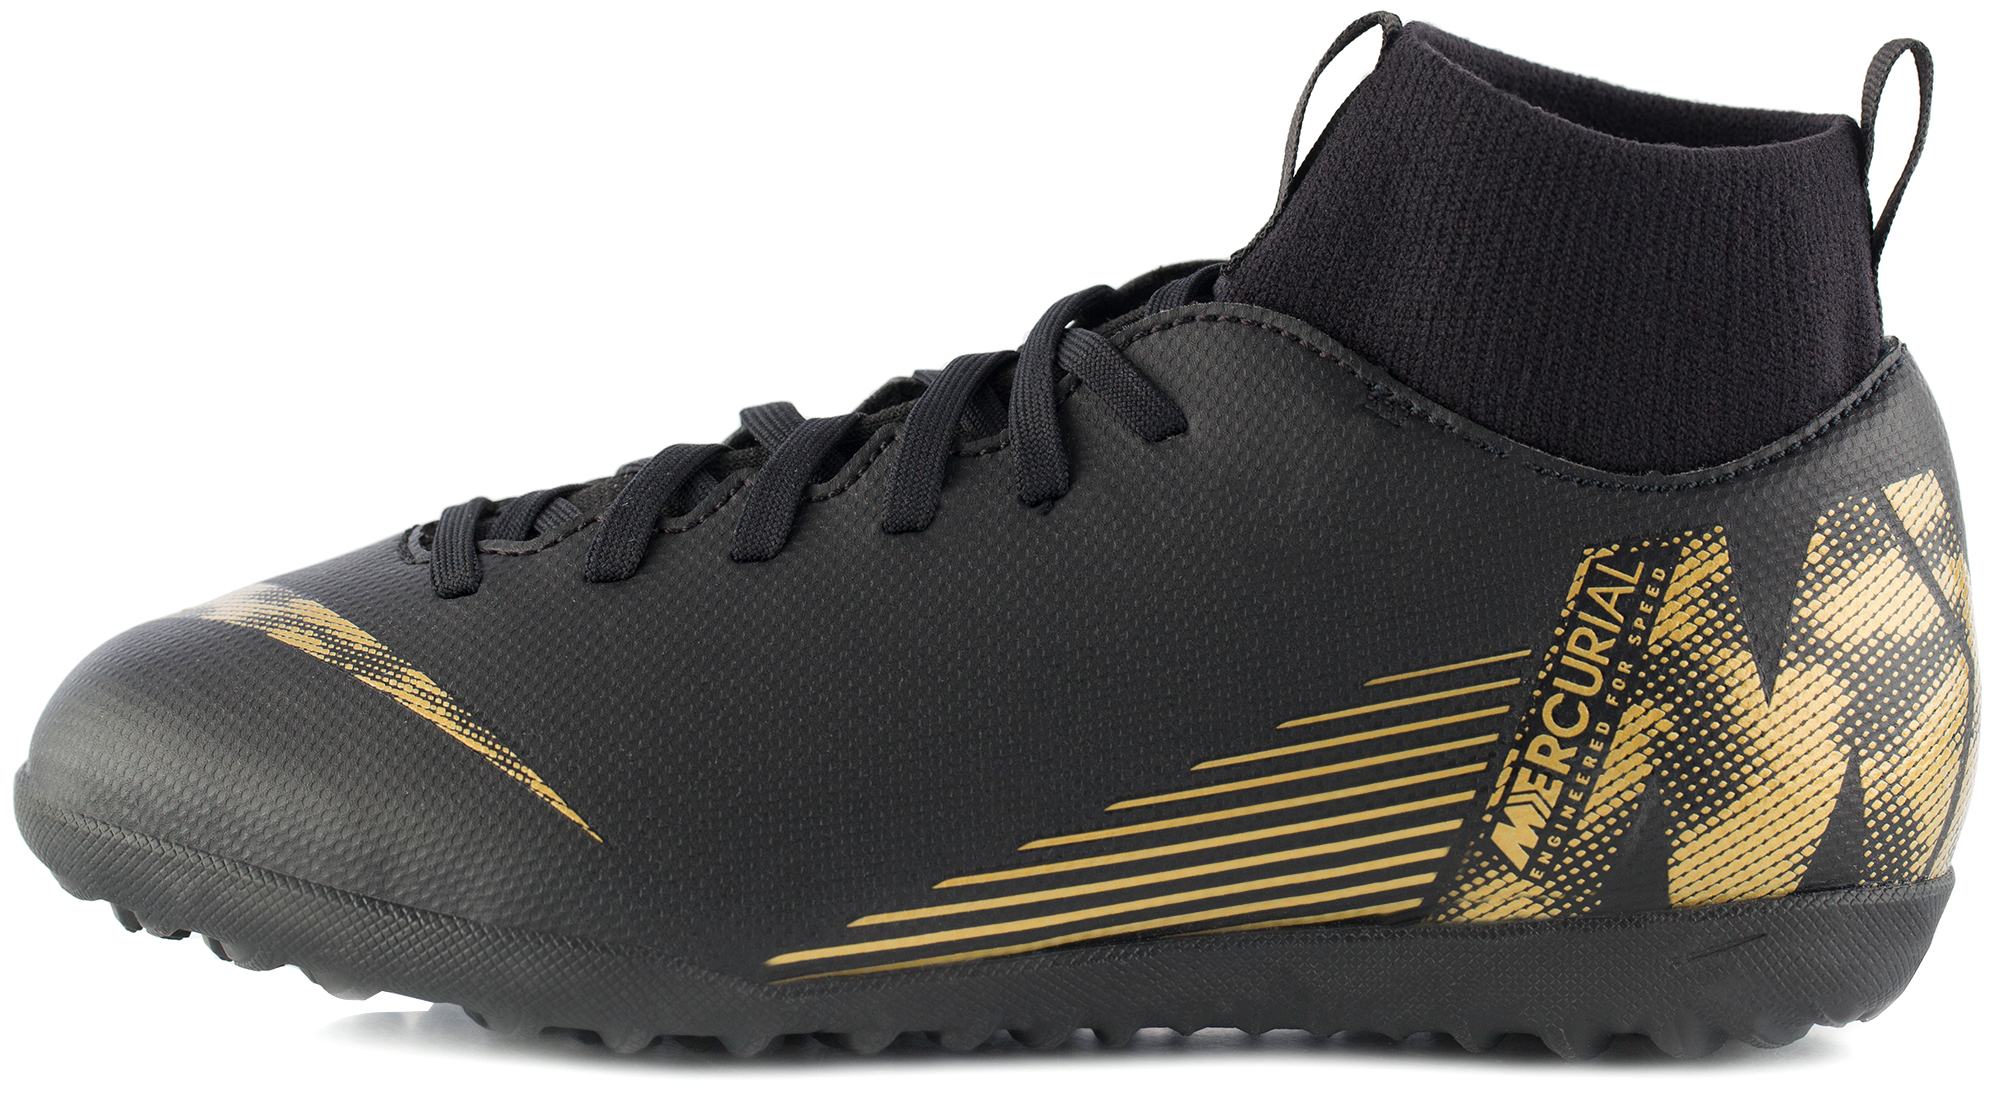 Nike Бутсы для мальчиков Nike Mercurial Superfly 6 Club TF, размер 34.5 бутсы nike superfly 6 club fg mg ah7363 001